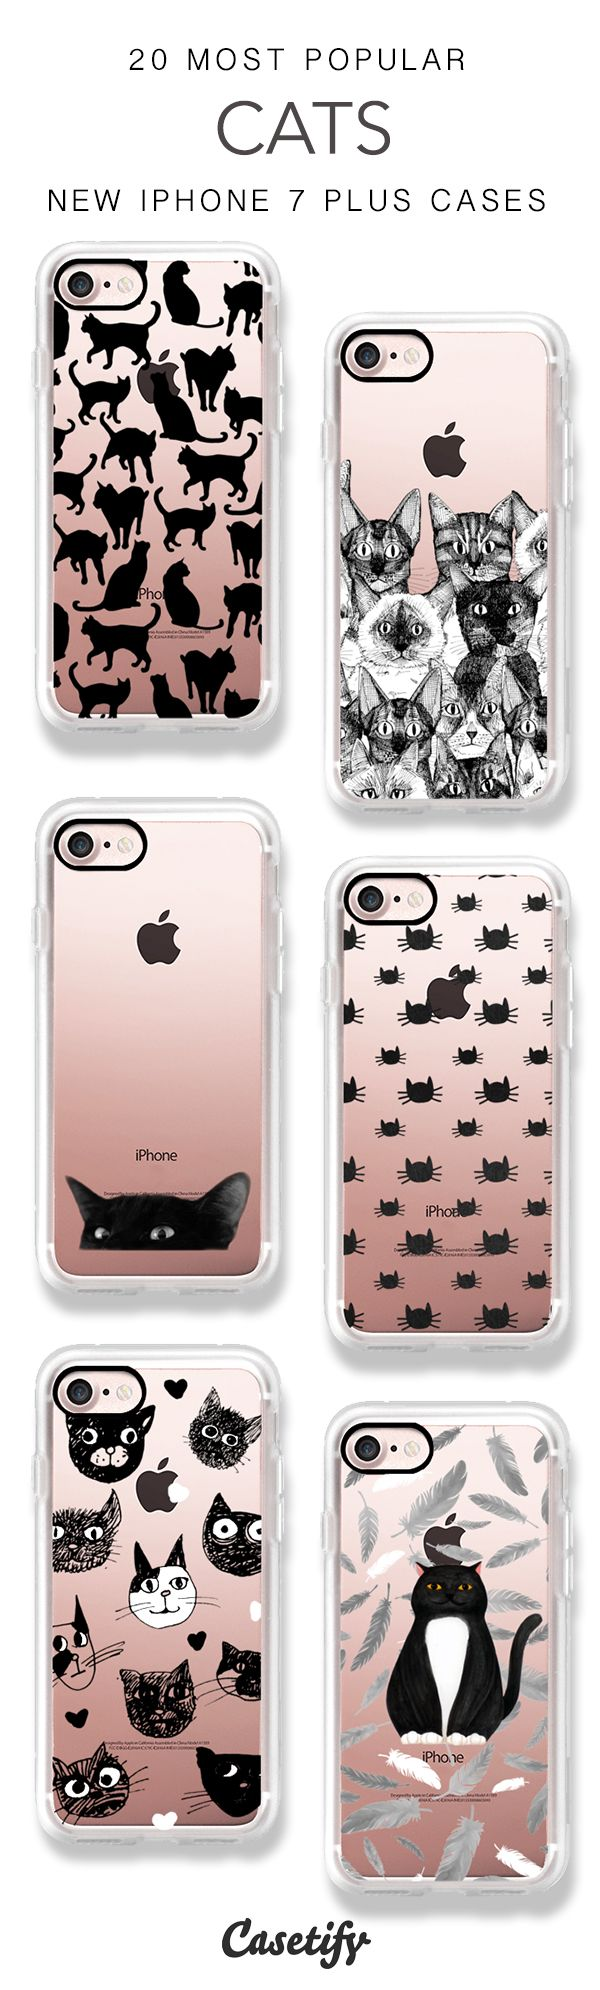 Cats are connoisseurs of comfort. 20 Most Popular CATS iPhone 7 Cases & iPhone 7 Plus Cases here >  https://www.casetify.com/artworks/02IfT1nUyX